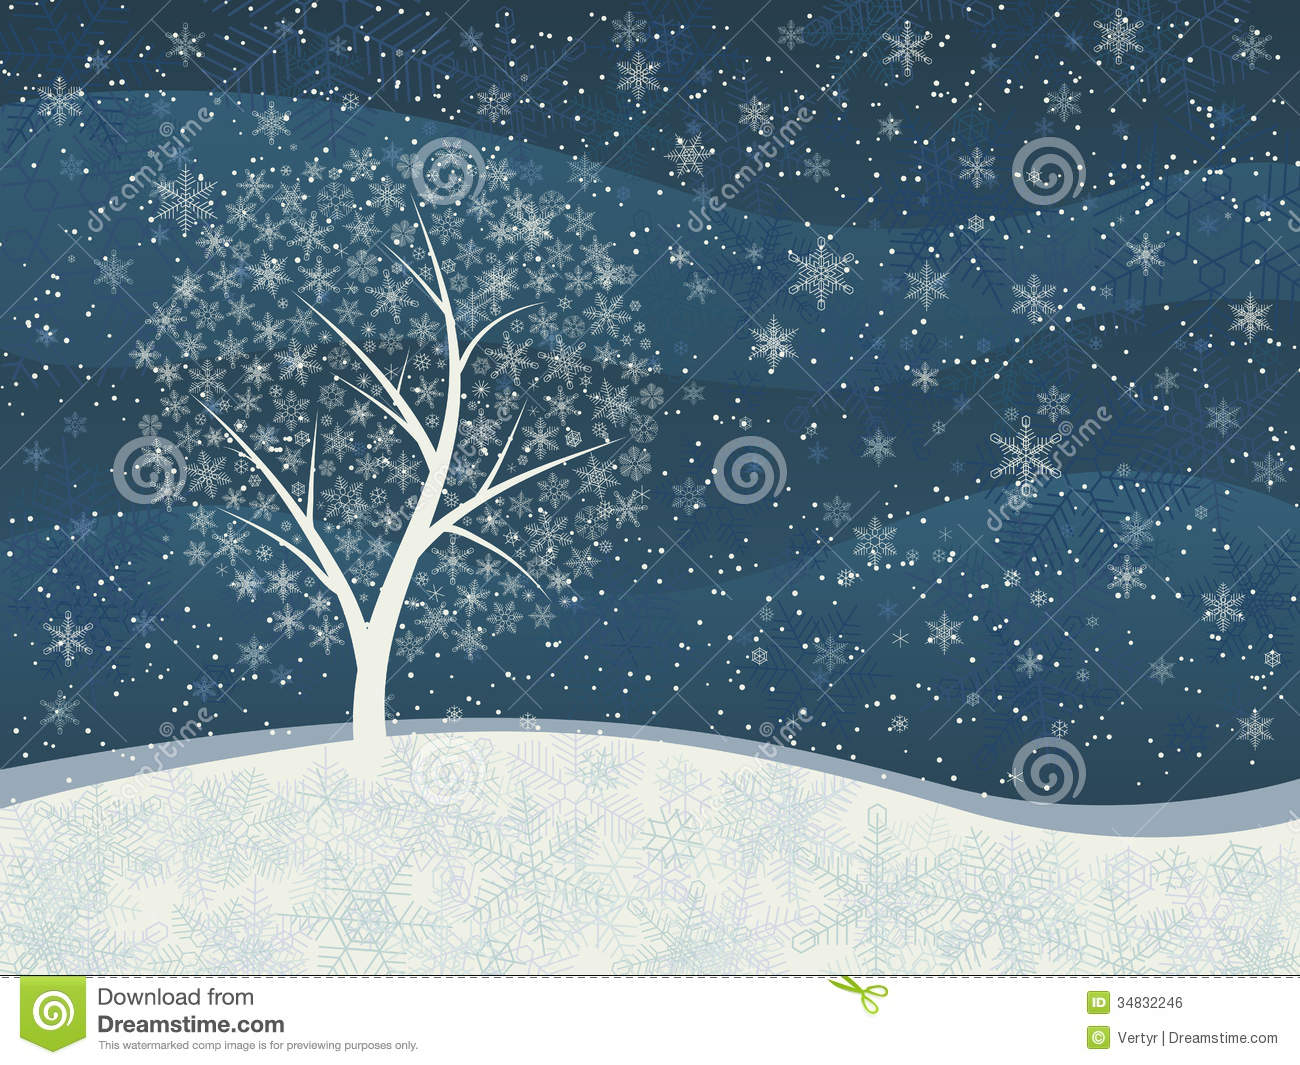 Winter Card Of Snowfall With Snowy Tree Stock Vector